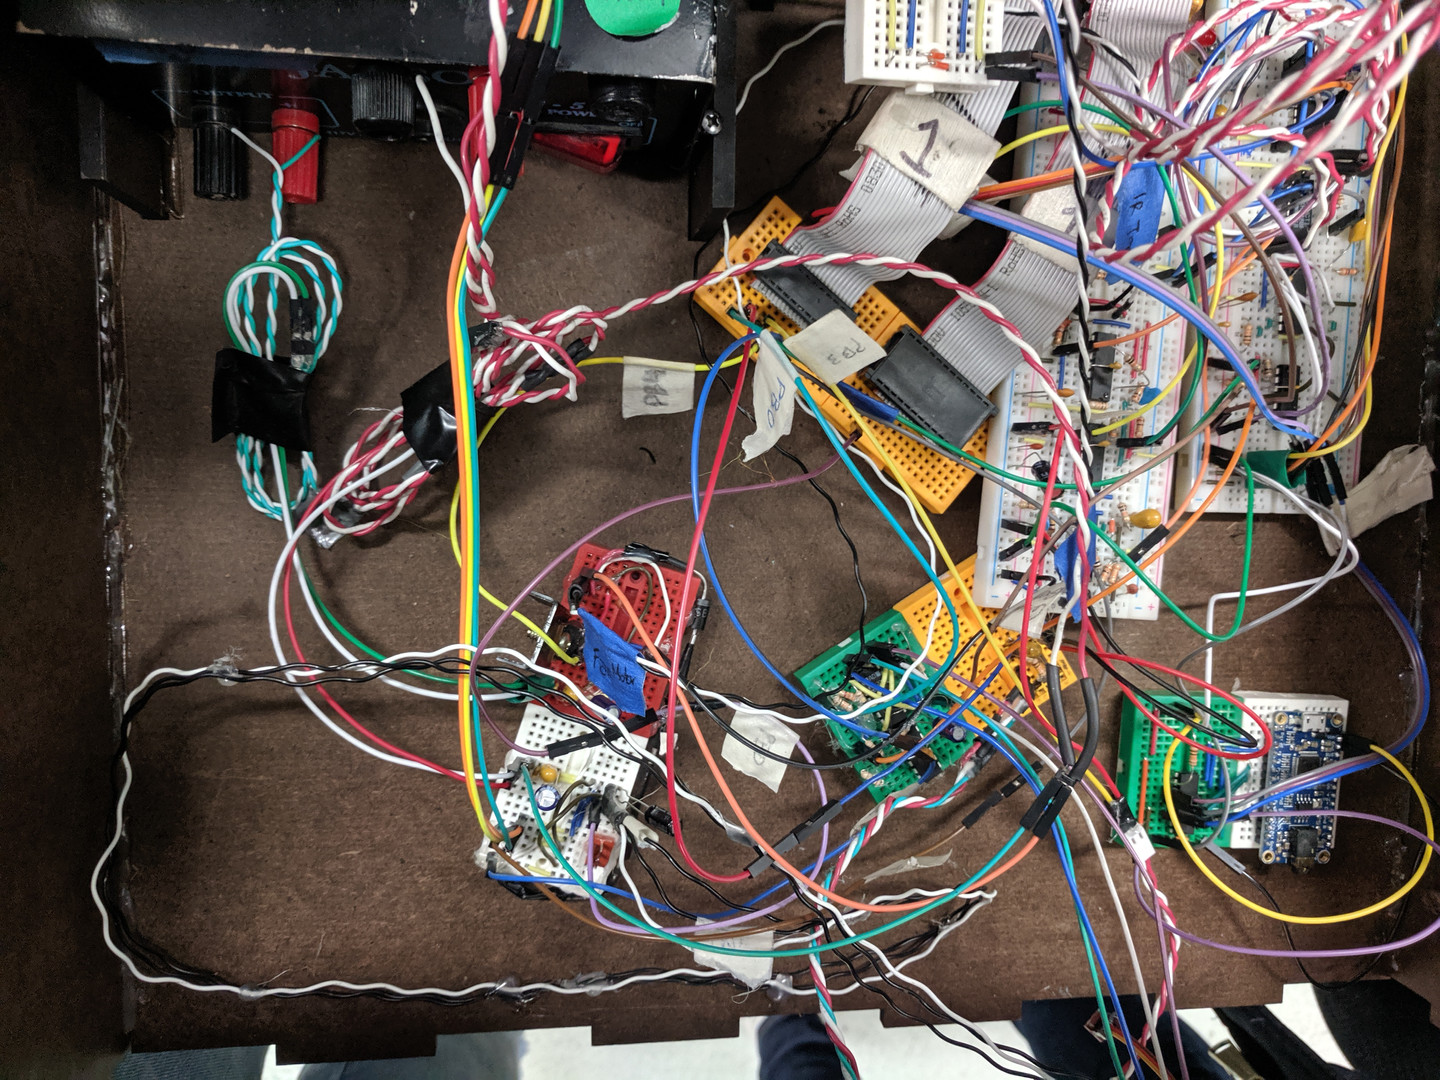 And more circuitry